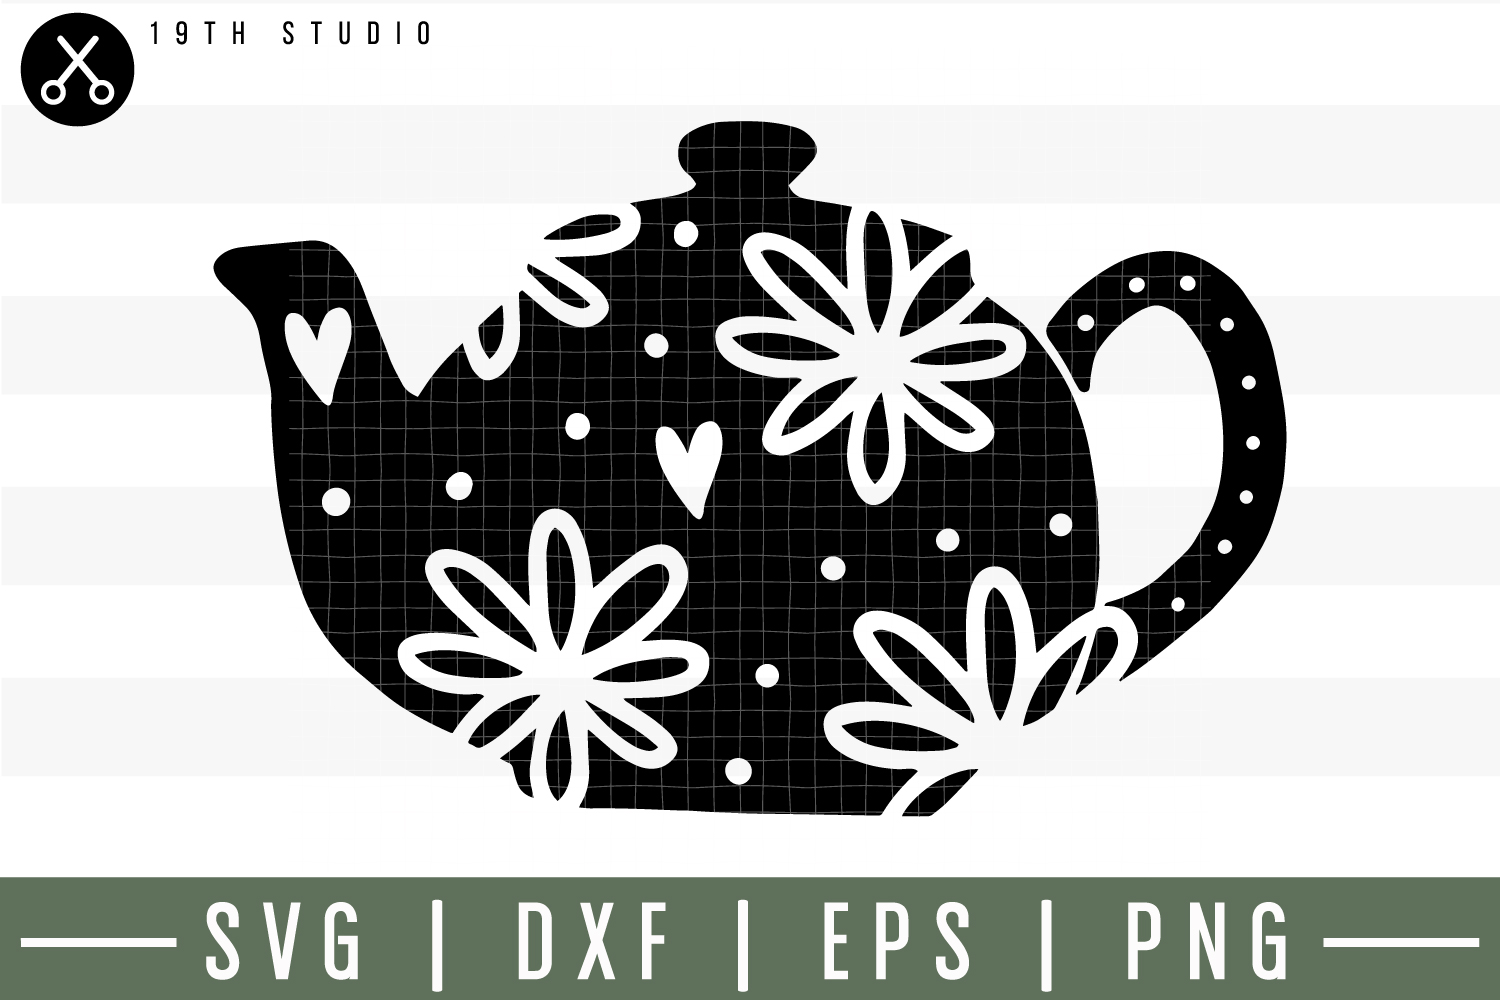 Floral tea pot SVG| Tea SVG example image 1